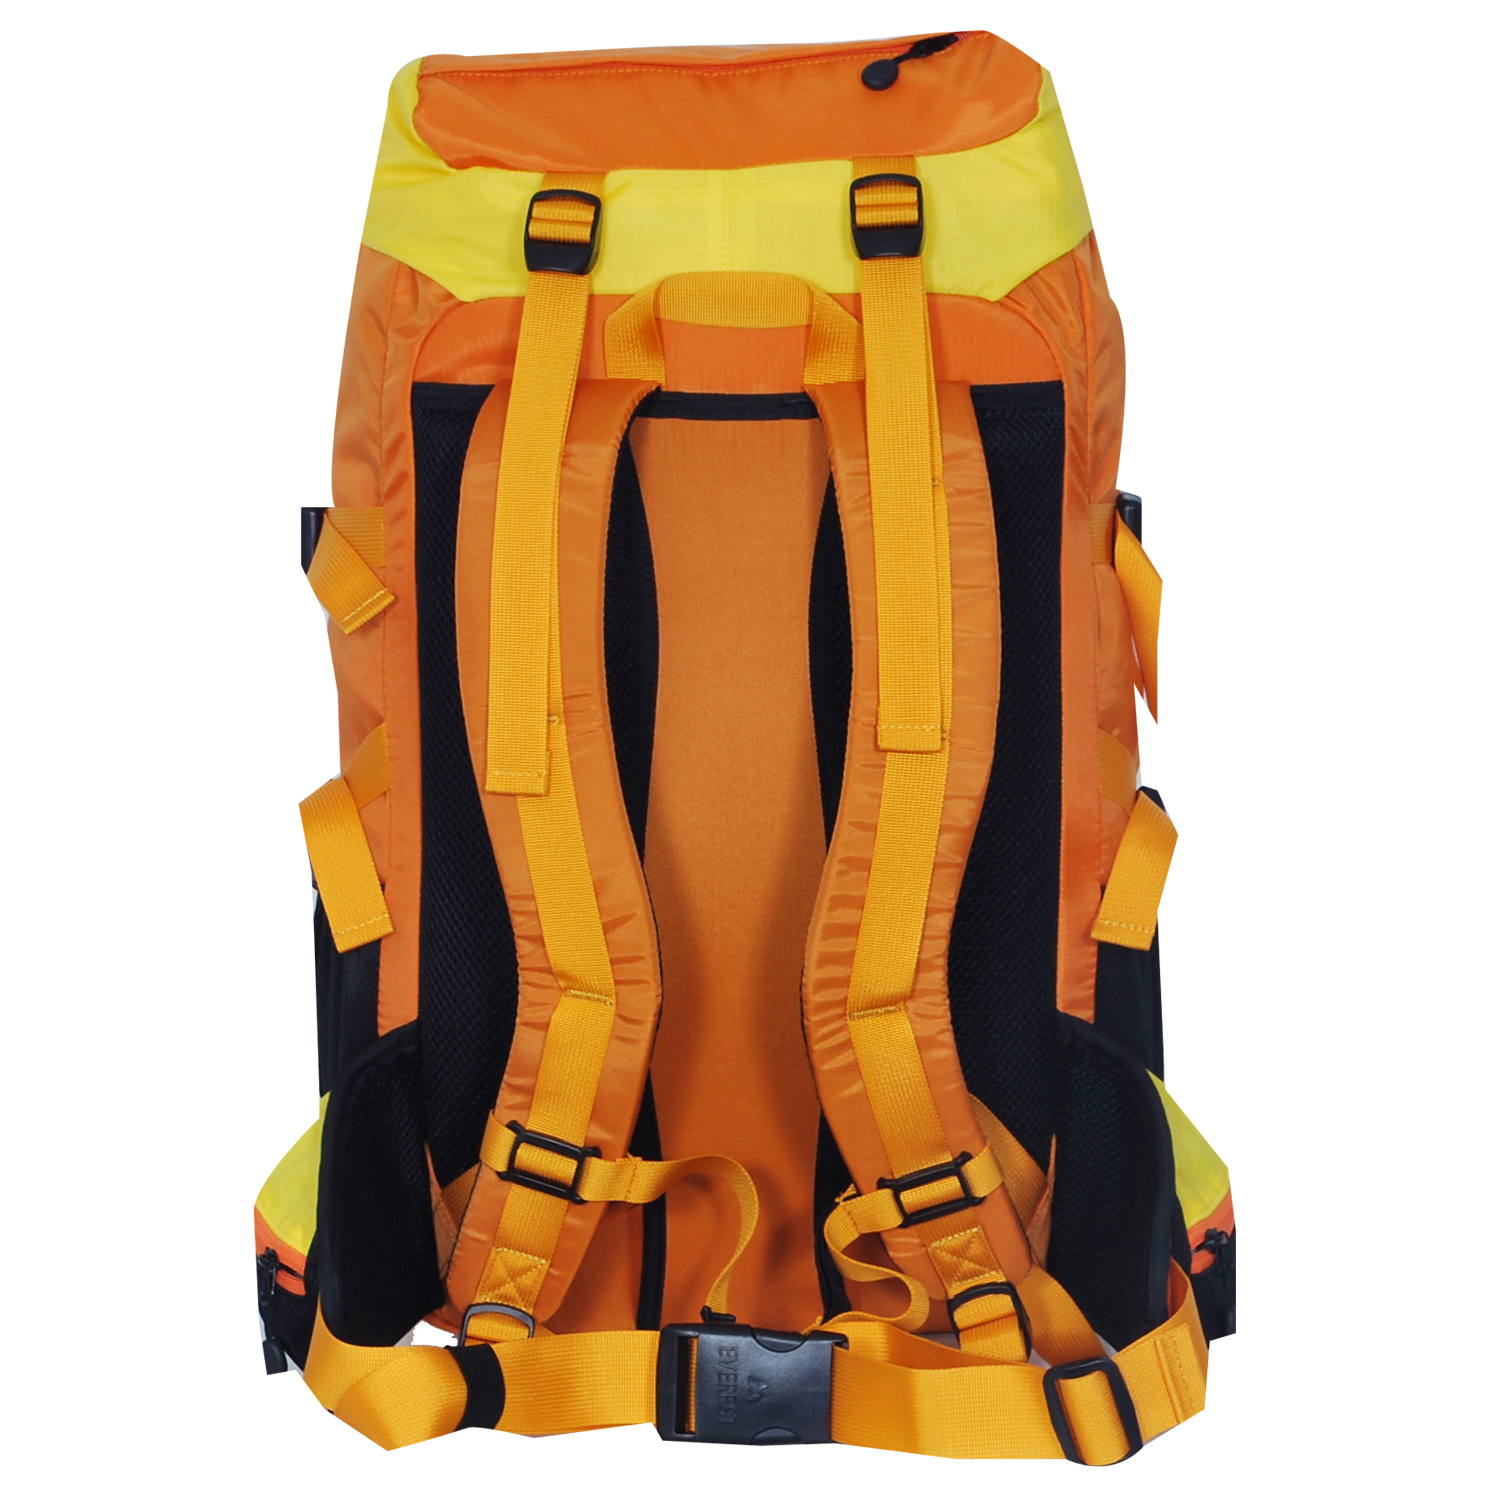 Everest Weekender Hiking Pack